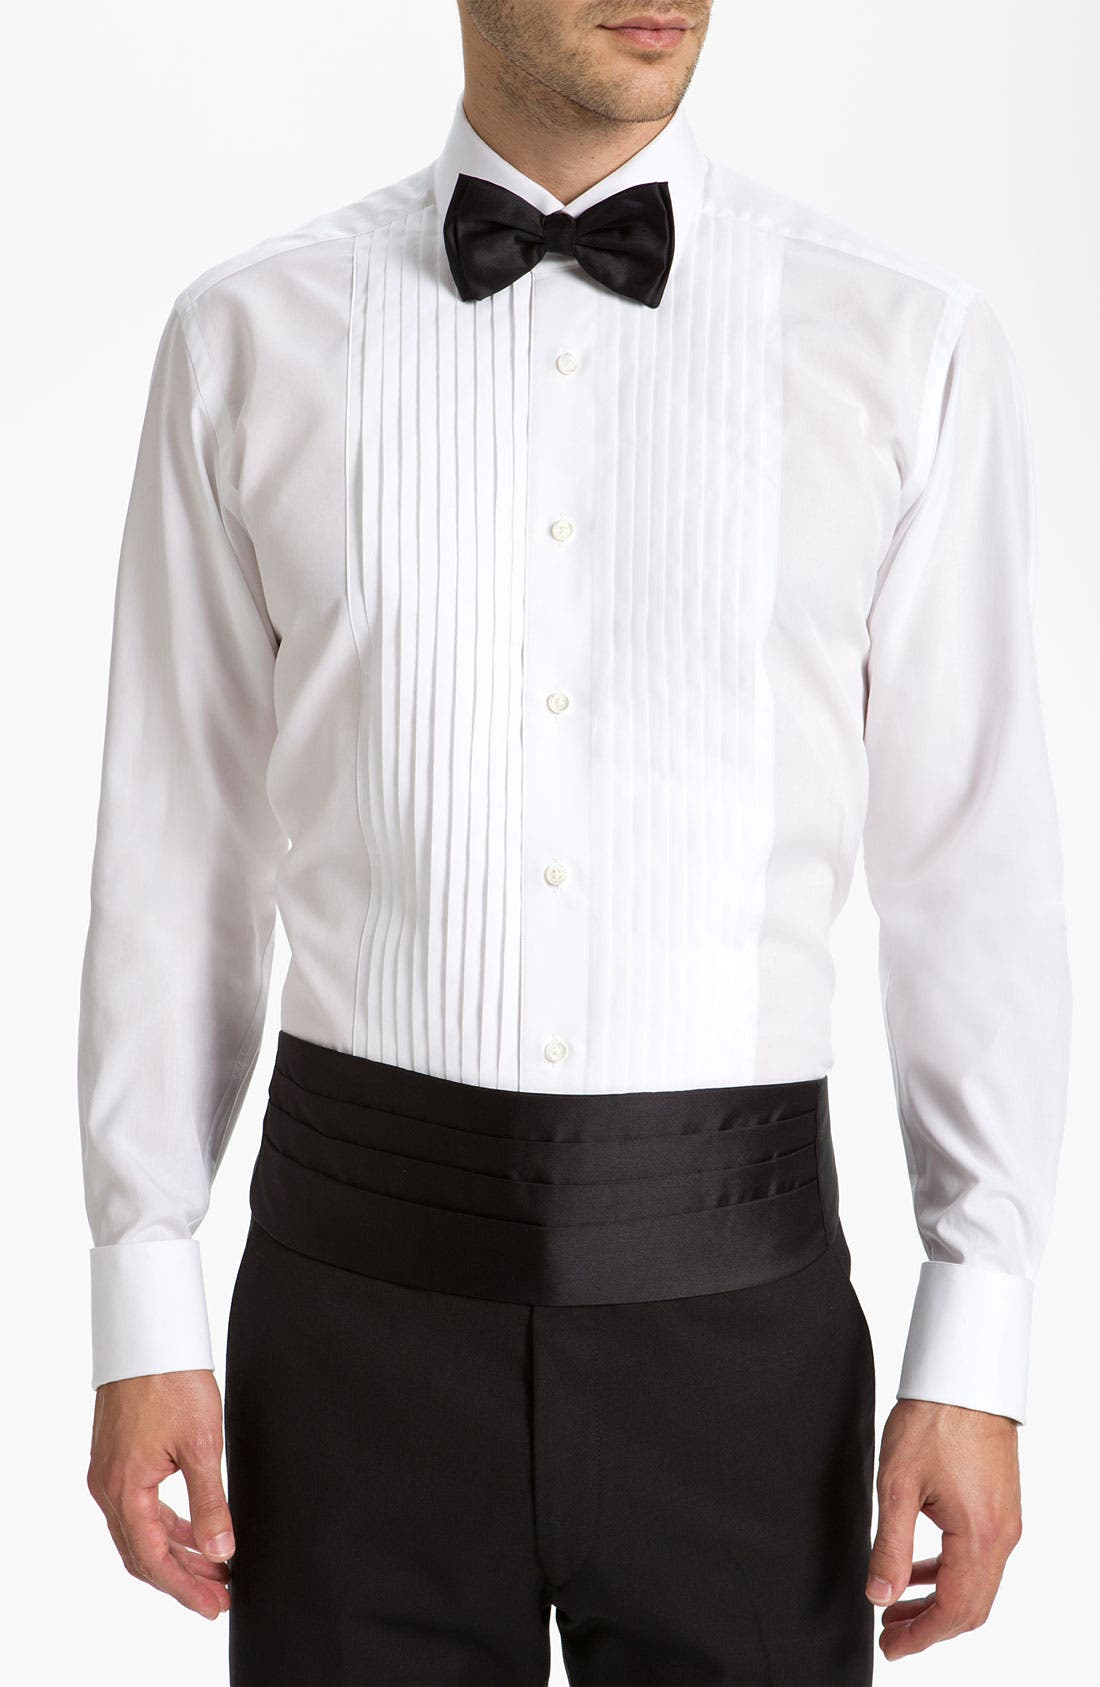 Alternate Image 1 Selected - BOSS Cummerbund & Bow Tie